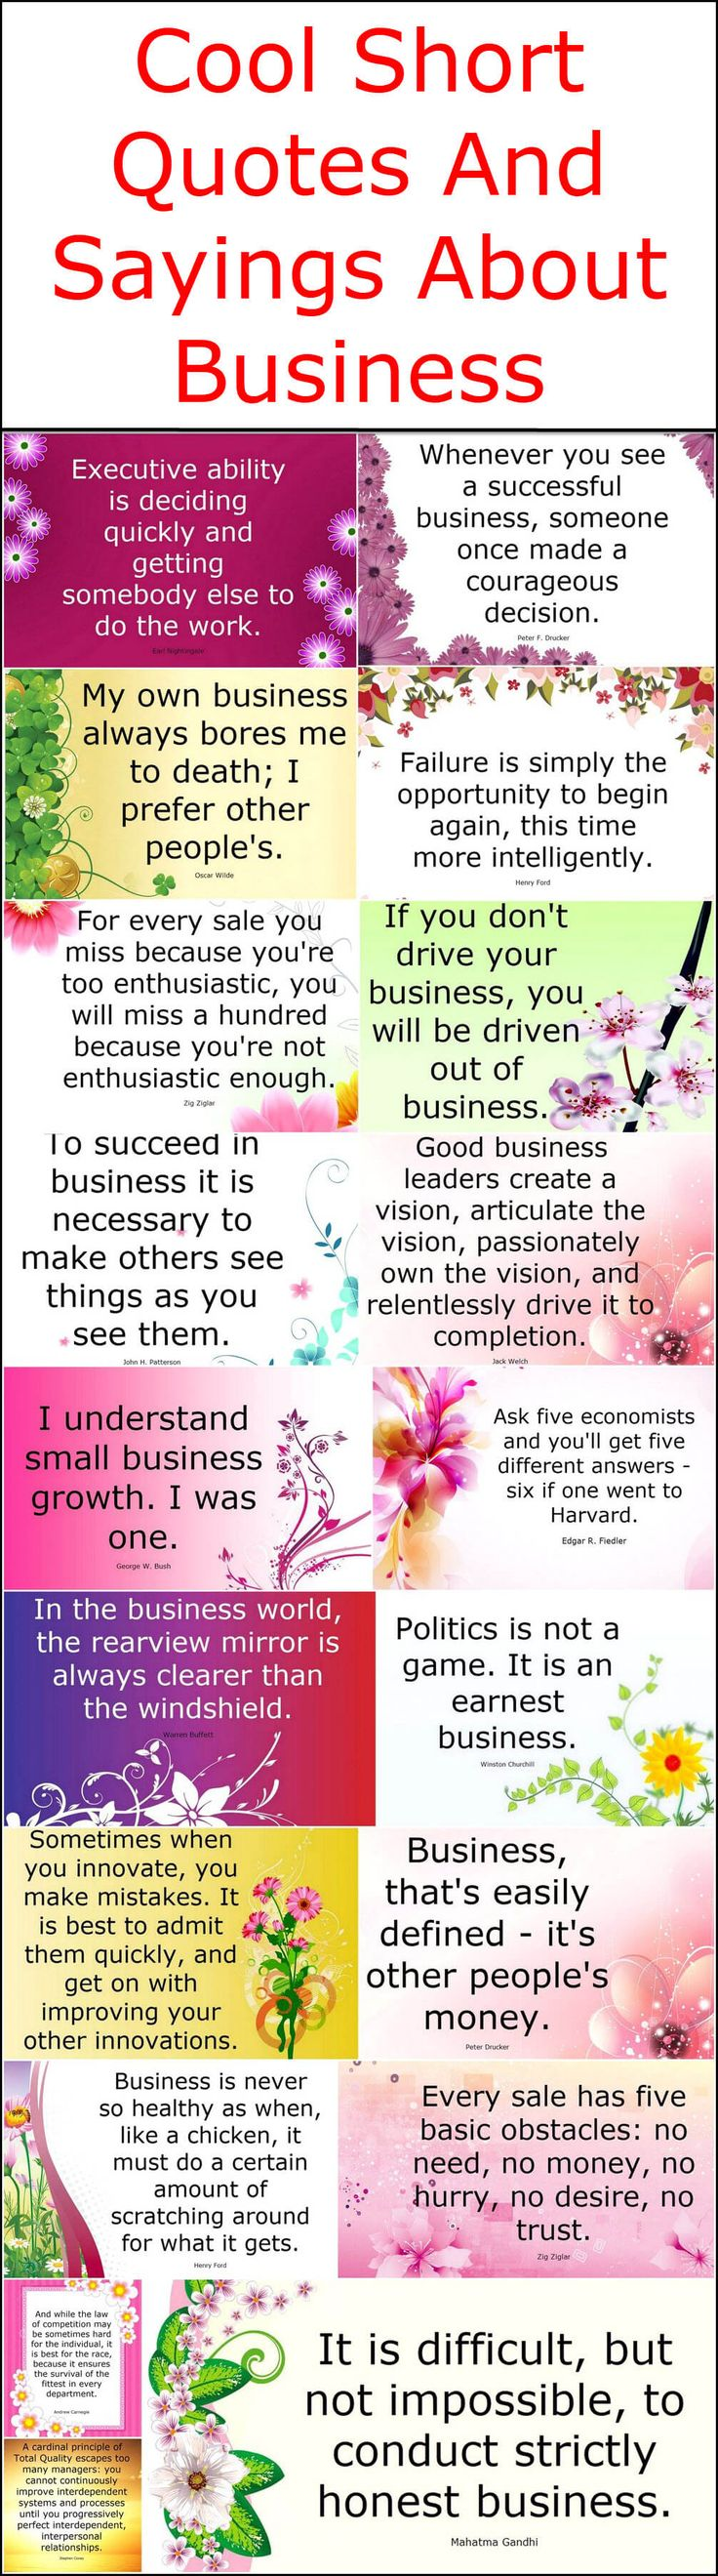 Here we came up with some amazing as well as cool business quotes for you. These short quotes will definitely increase your information and at the same time, these will assist you that how to drive your business properly. These short sayings about business will reveal the basic term about how to perform your business tasks honestly.